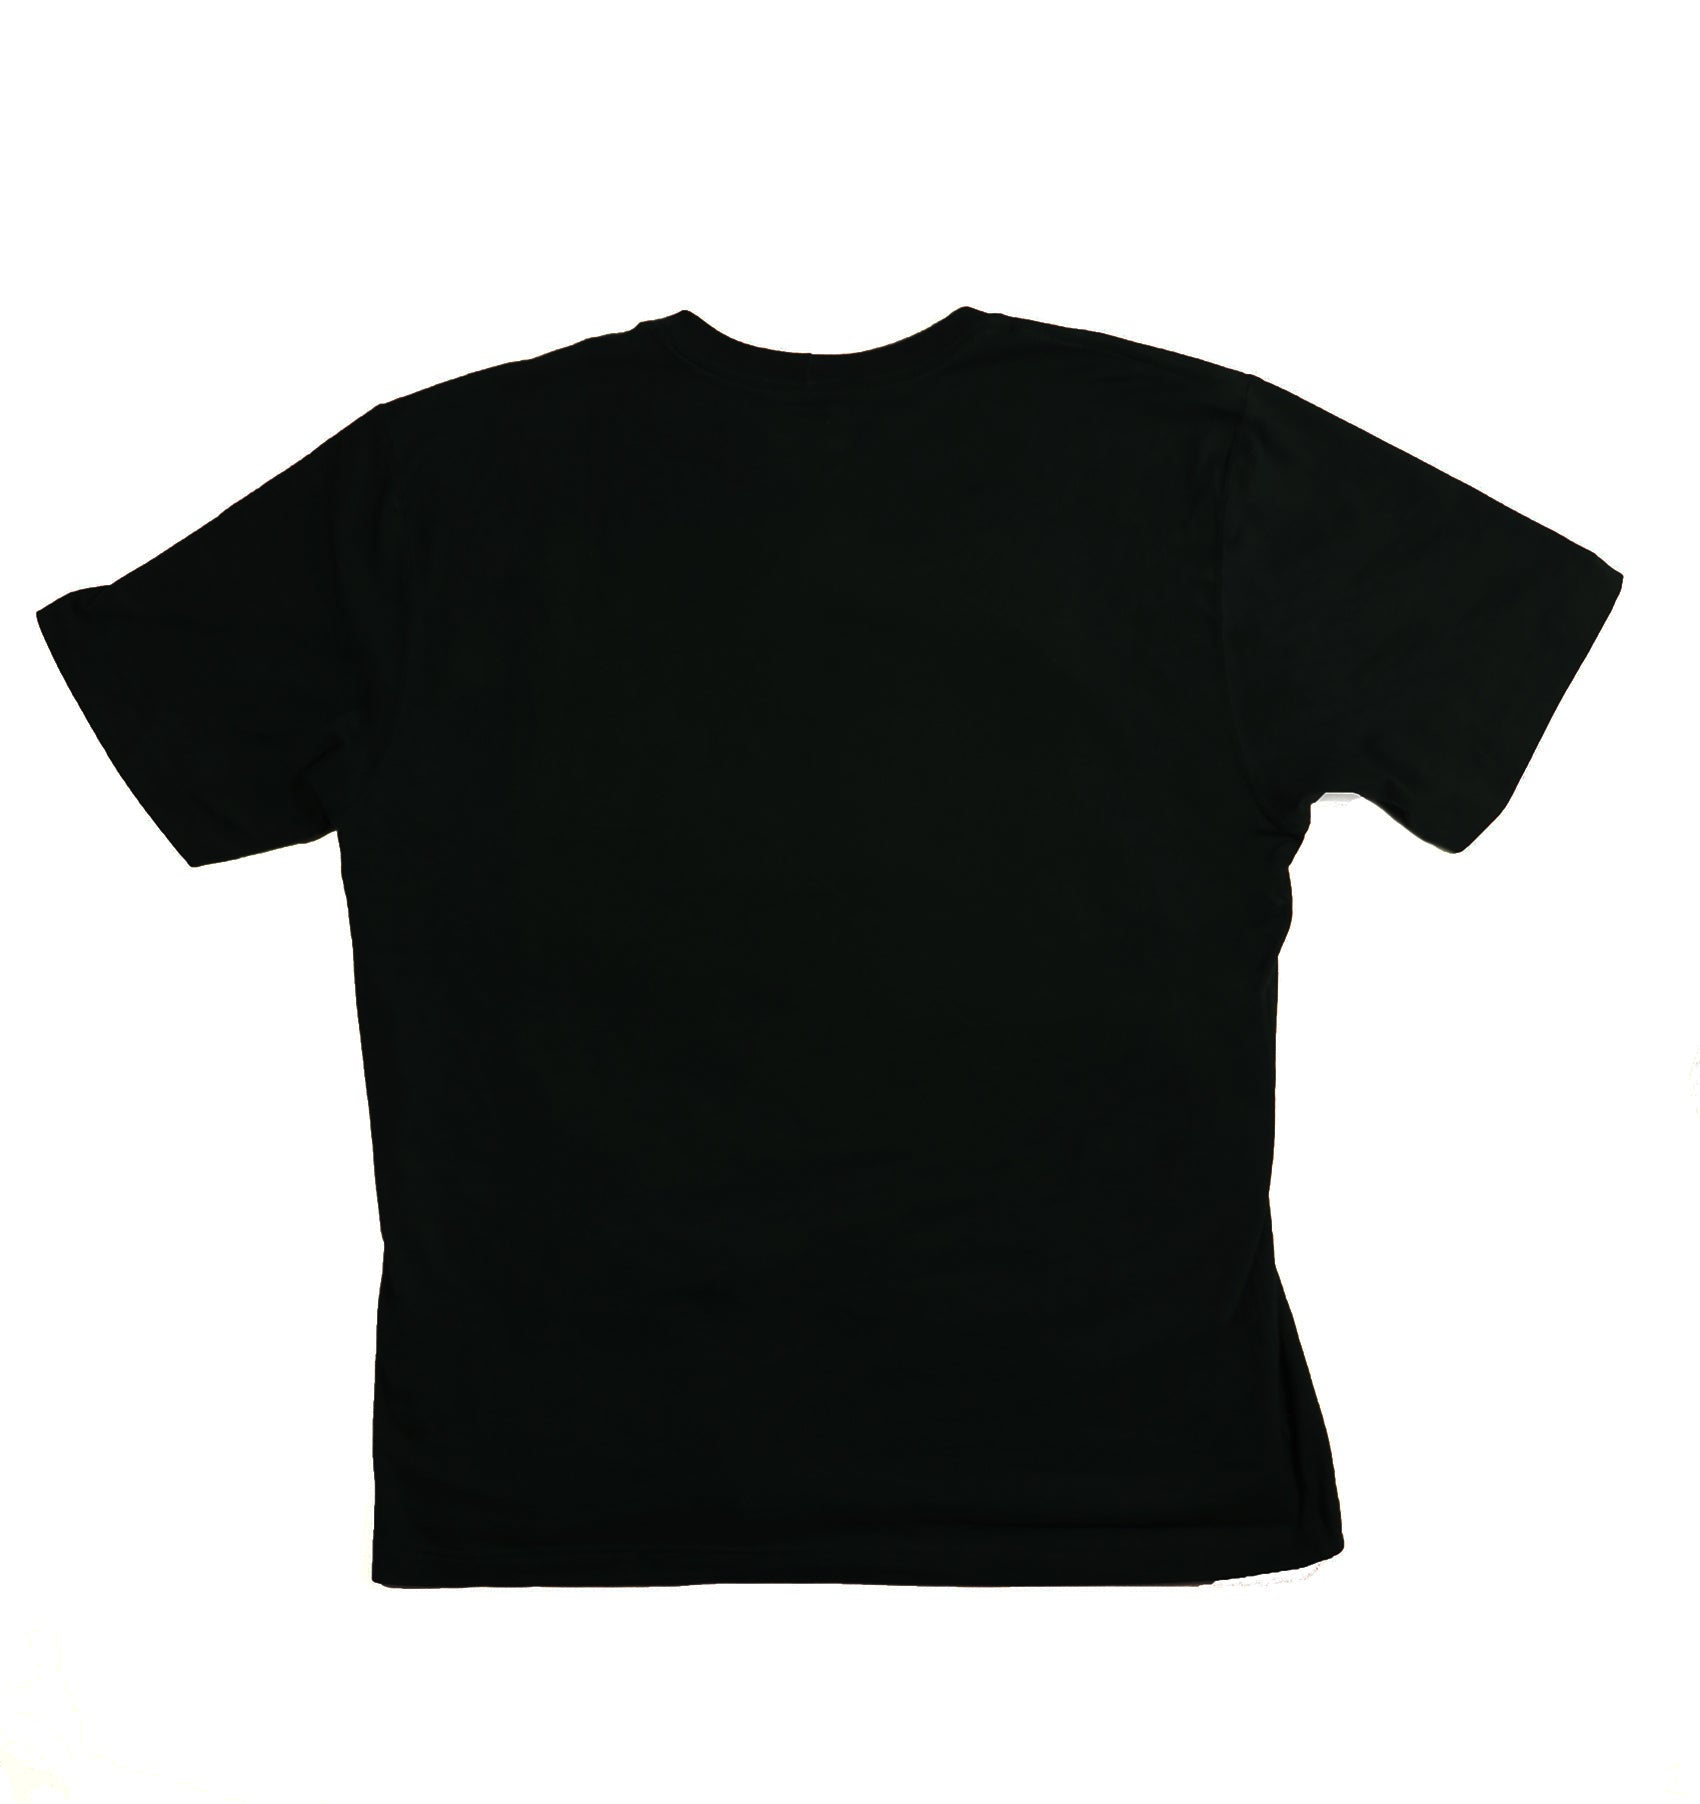 Carhartt pocket tee